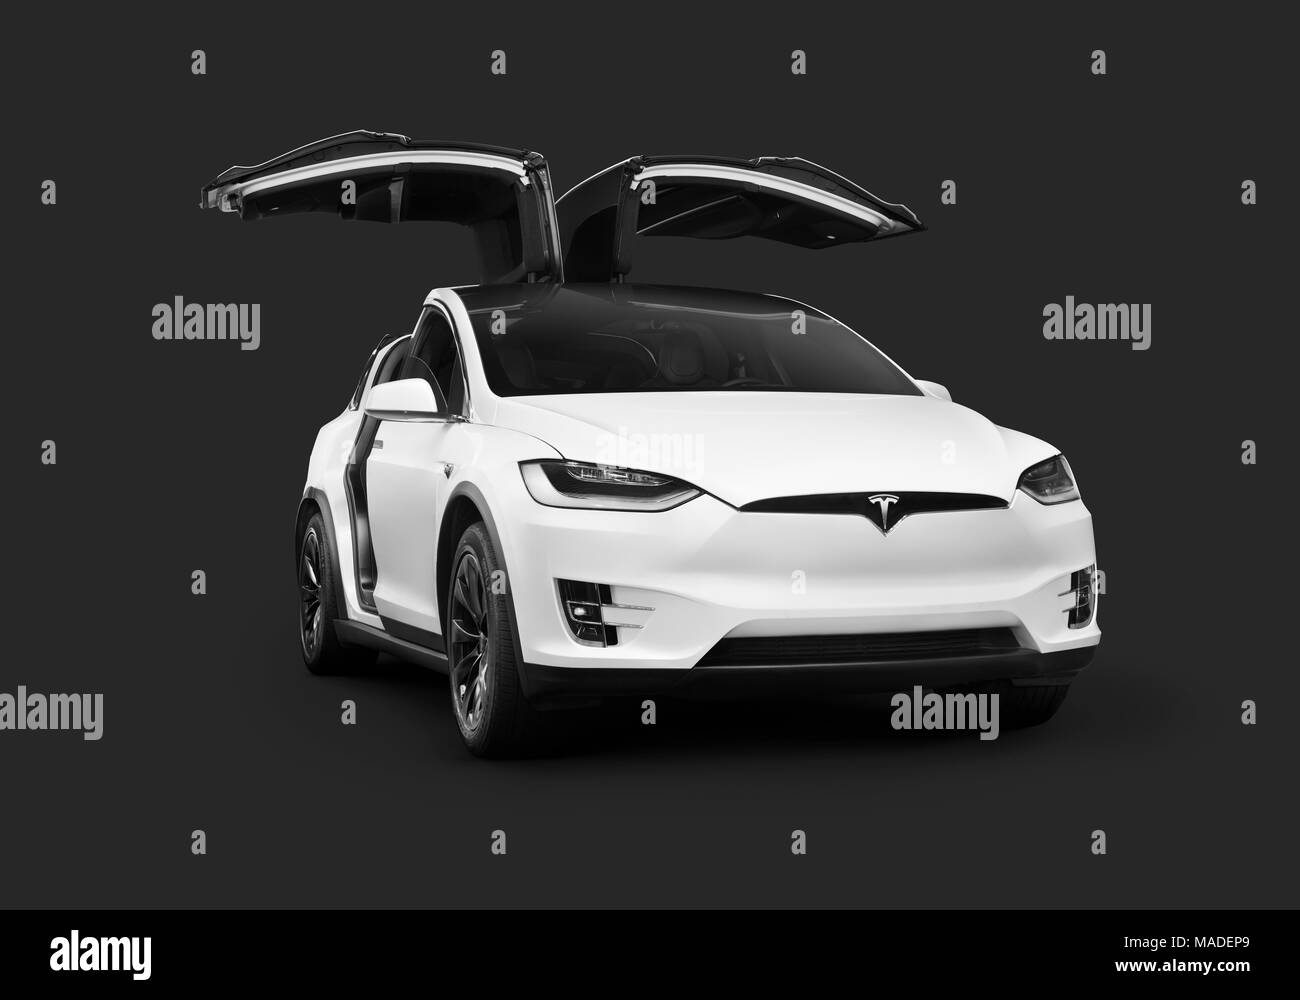 White 2018 Tesla Model X Luxury Suv Electric Car With Open Falcon